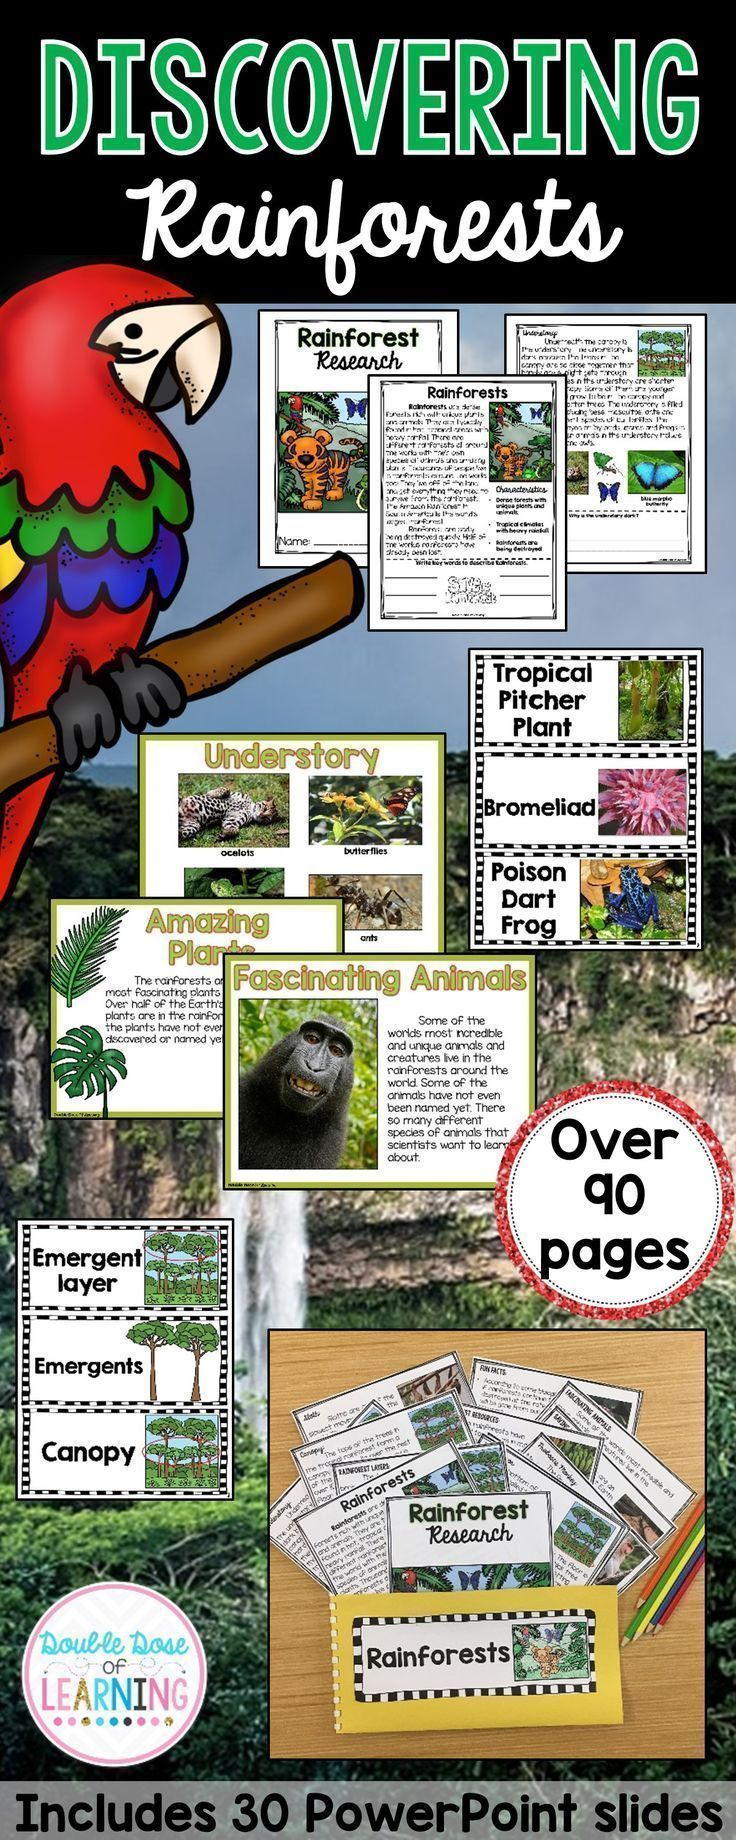 Easily and thoroughly teach the Biomes with this Rainforest Research Unit with ready to go materials and PowerPoint! This unit is interactive and utilizes multimodal strategies to increase student engagement and outcomes. The Rainforest unit is a comprehensive week long unit that integrates technology, vocabulary, writing, art, reading strategies and more! Students will respond to informational text by answering questions in a student booklet in a variety of formats.